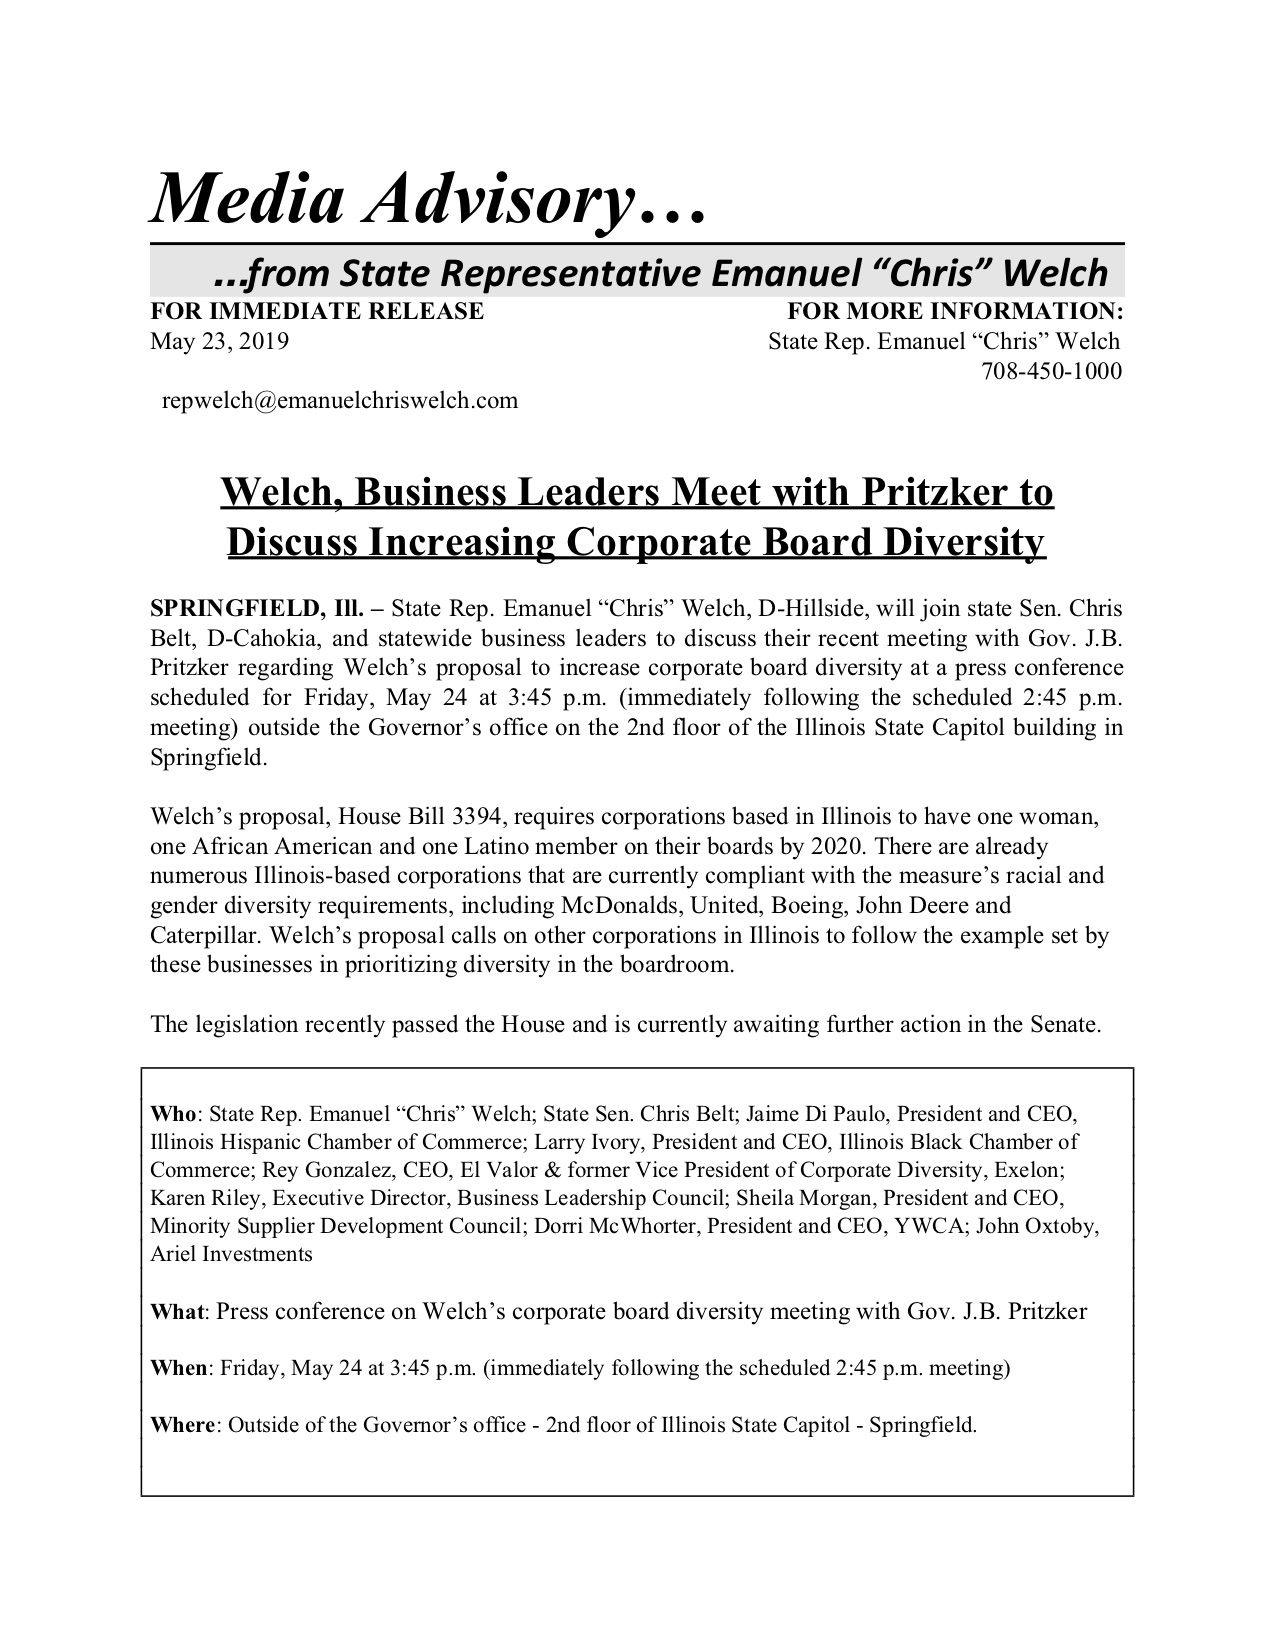 Welch, Business Leaders Meet with Pritzker to Discuss Increasing Corporate Board Diversity  (May 23, 2019)